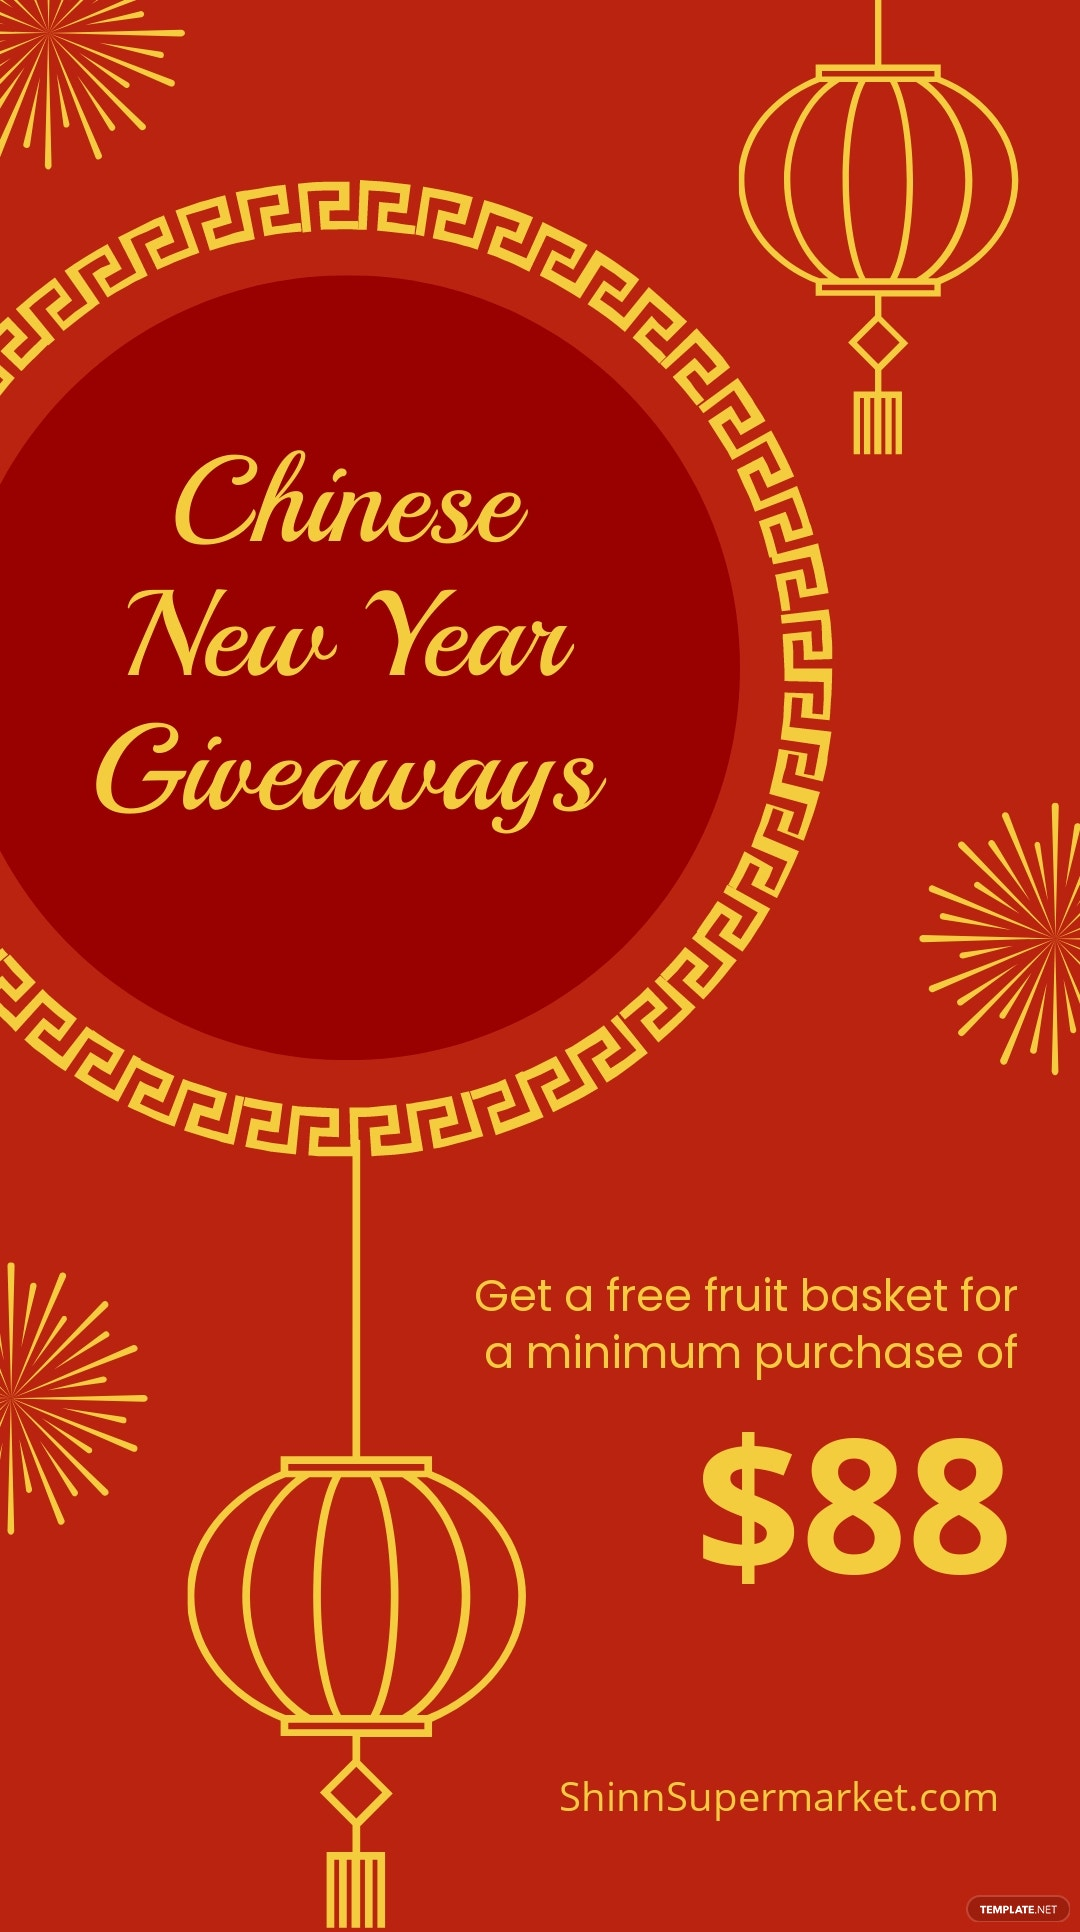 Chinese New Year Giveaway Instagram Story Template.jpe